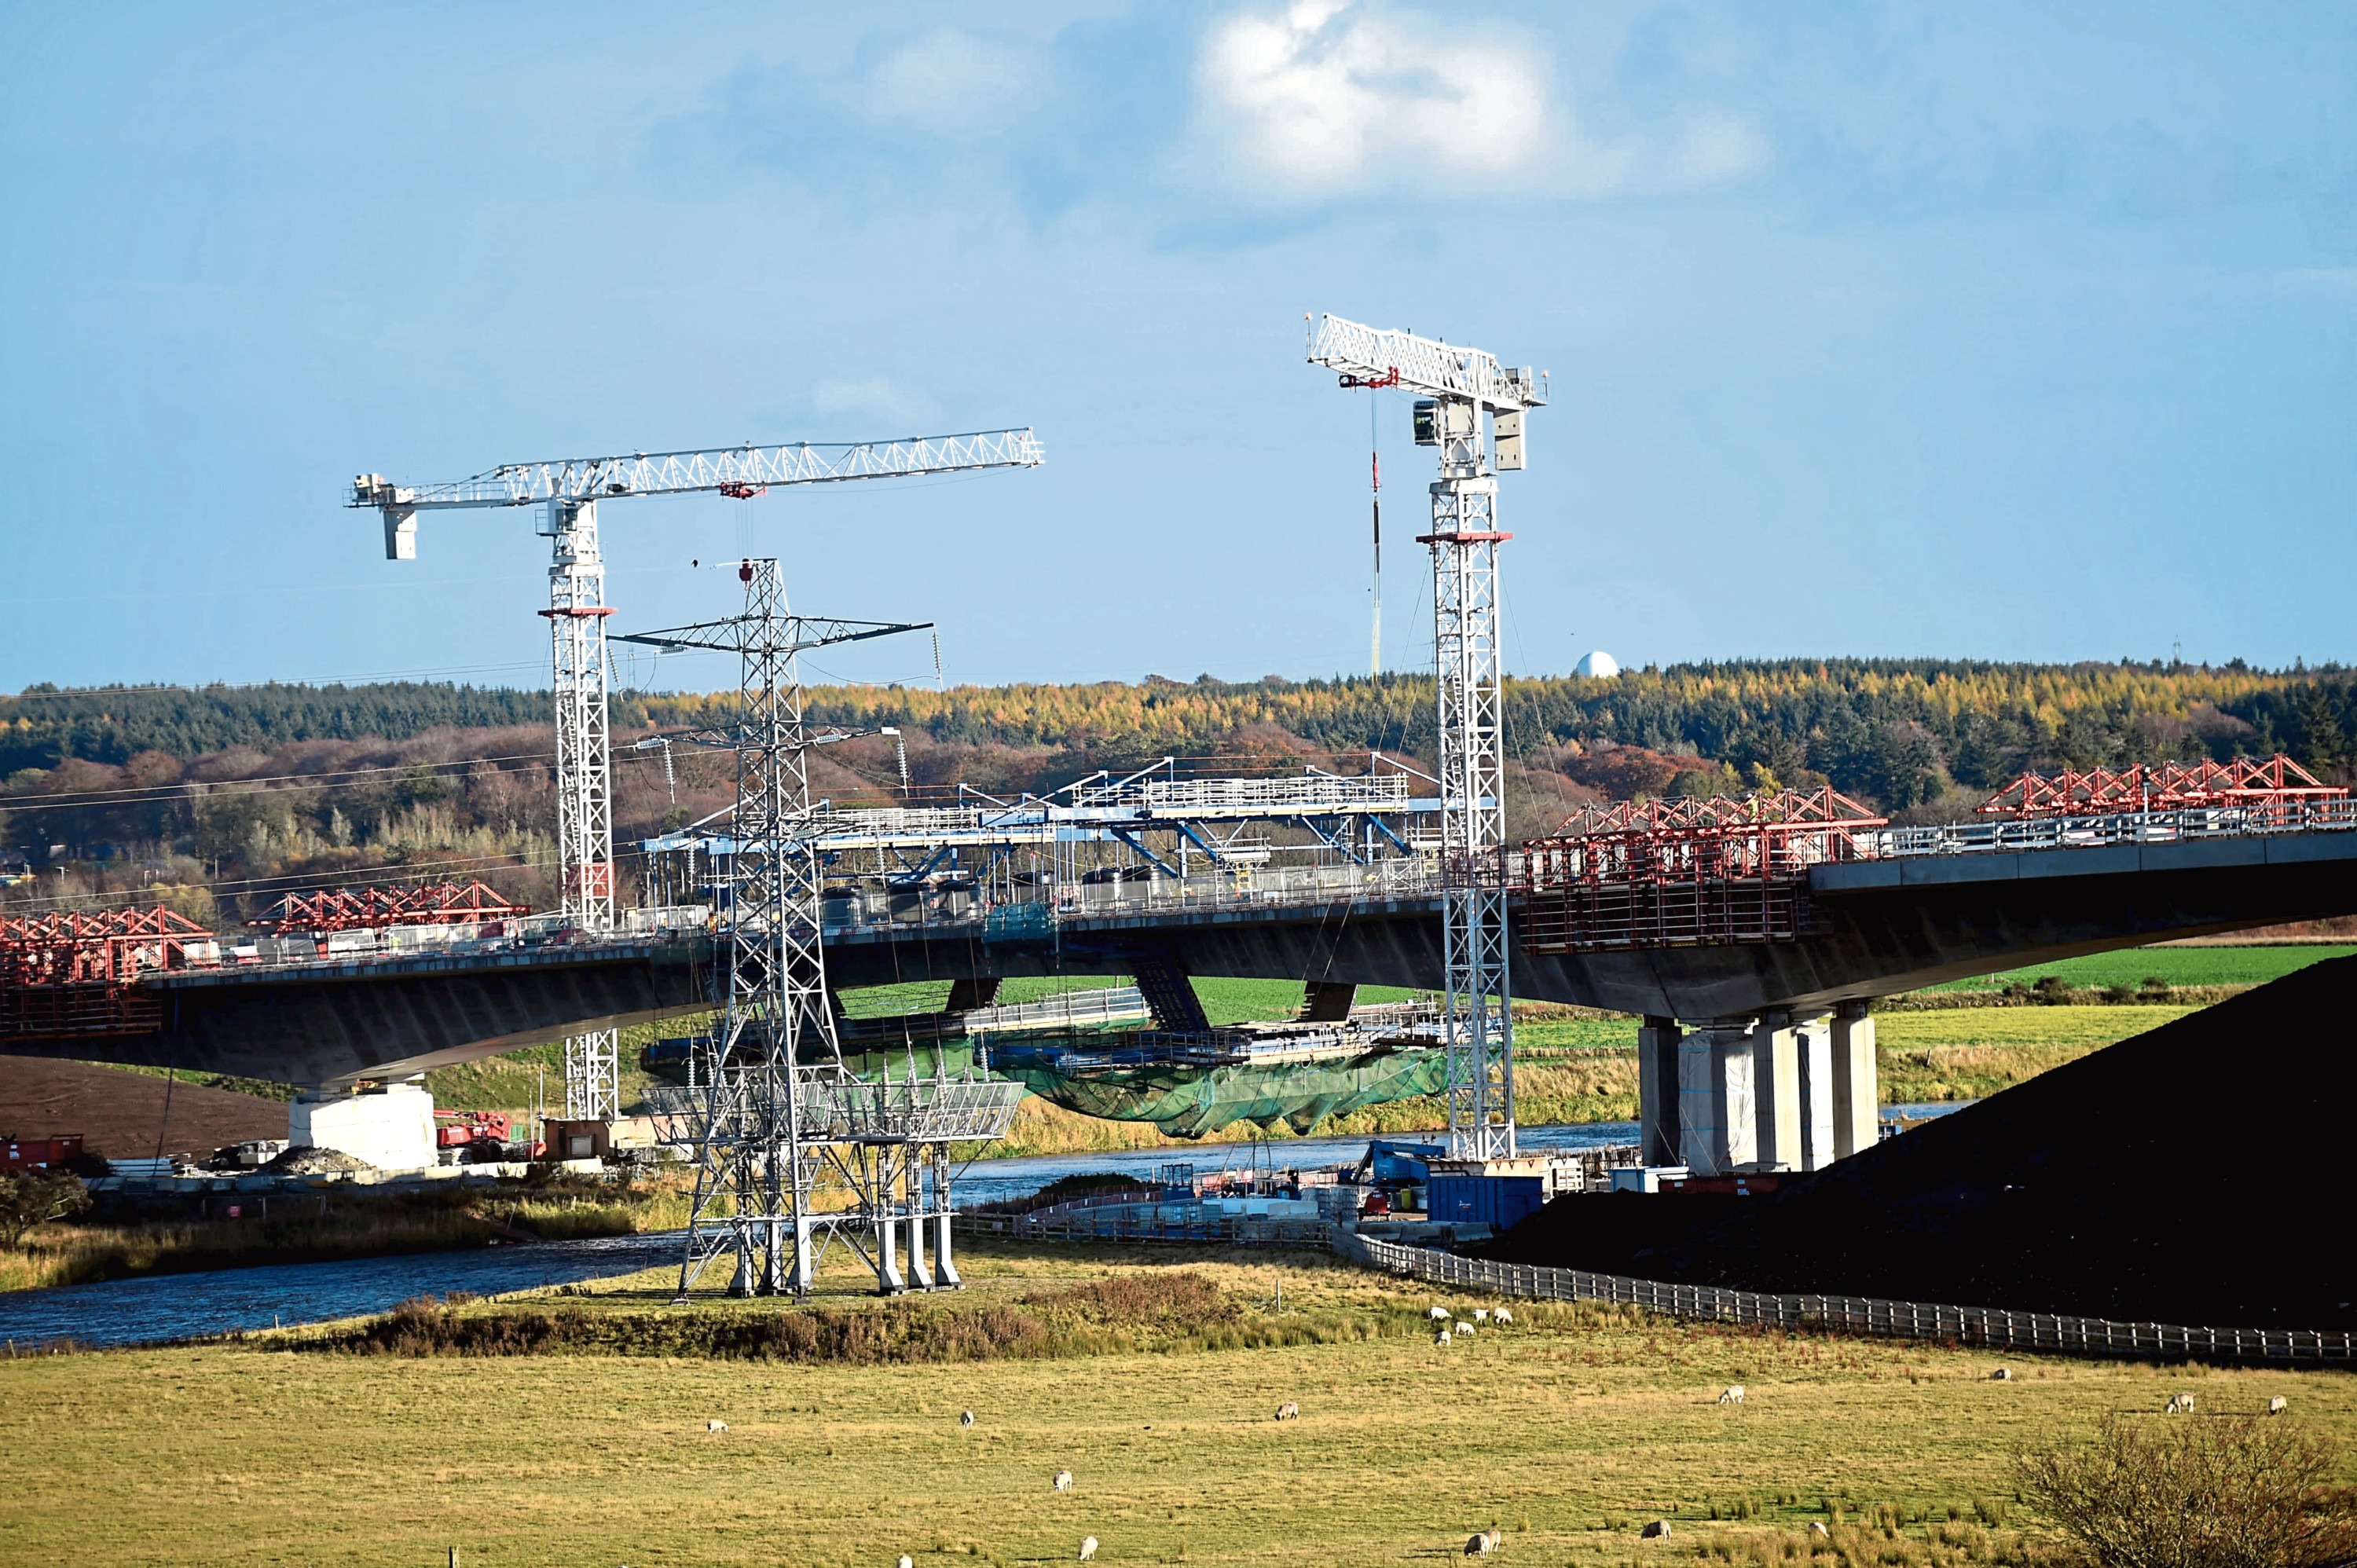 The final section of the road was delayed by works on the bridge over the River Don